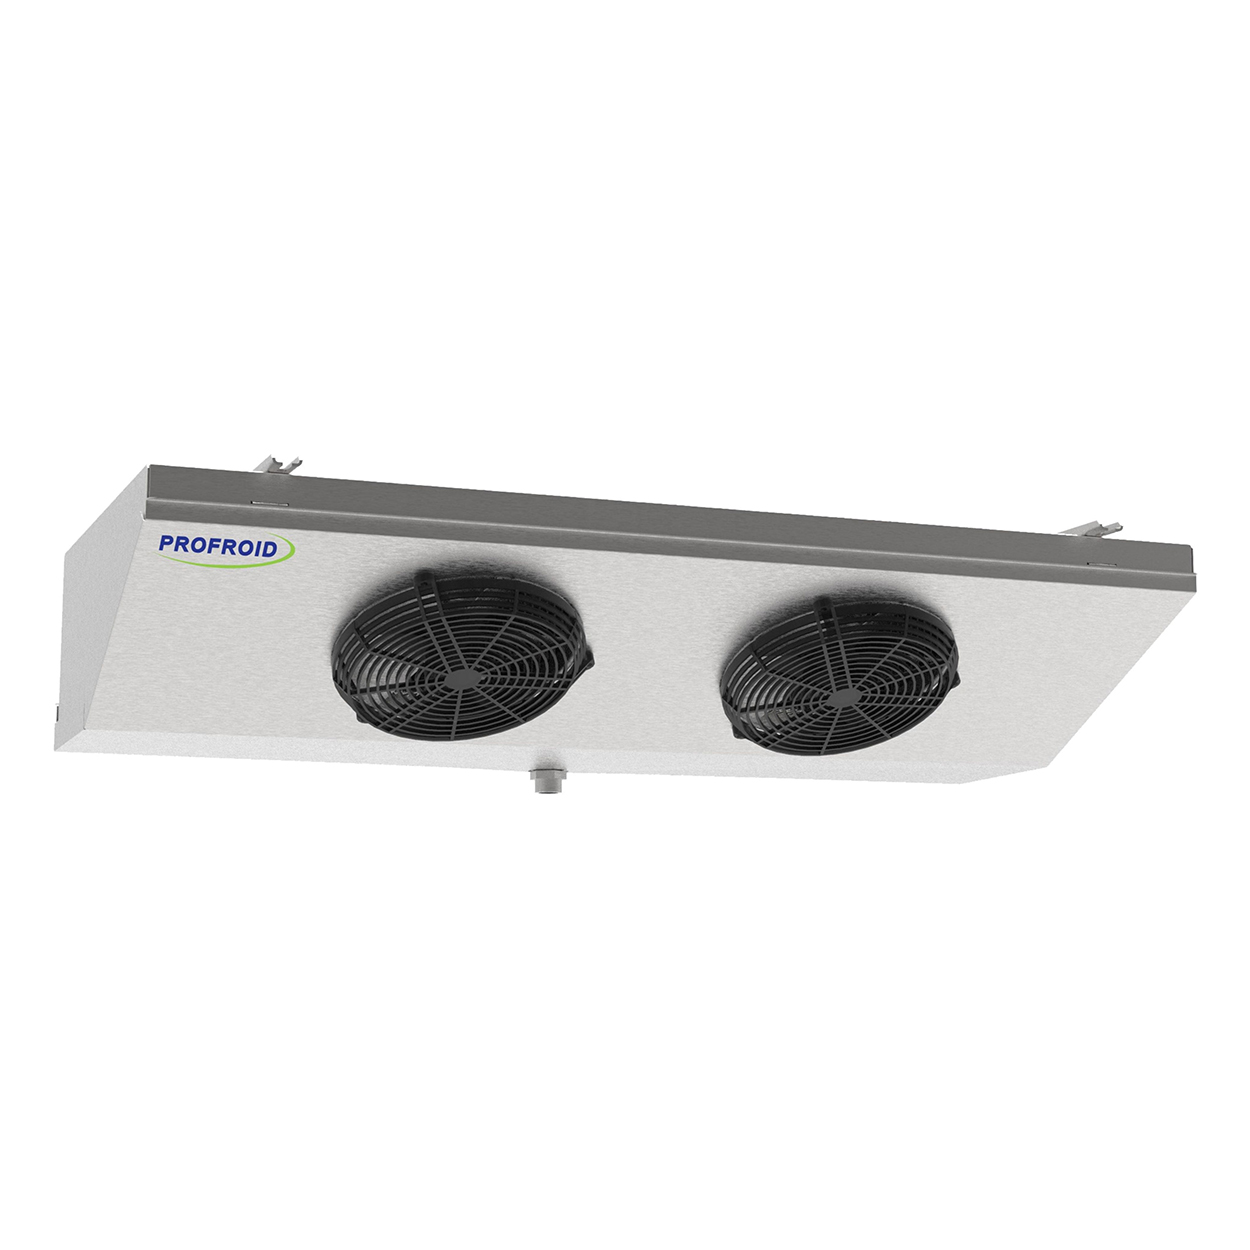 Profroid-Solo-XS-25-31-air-cooler